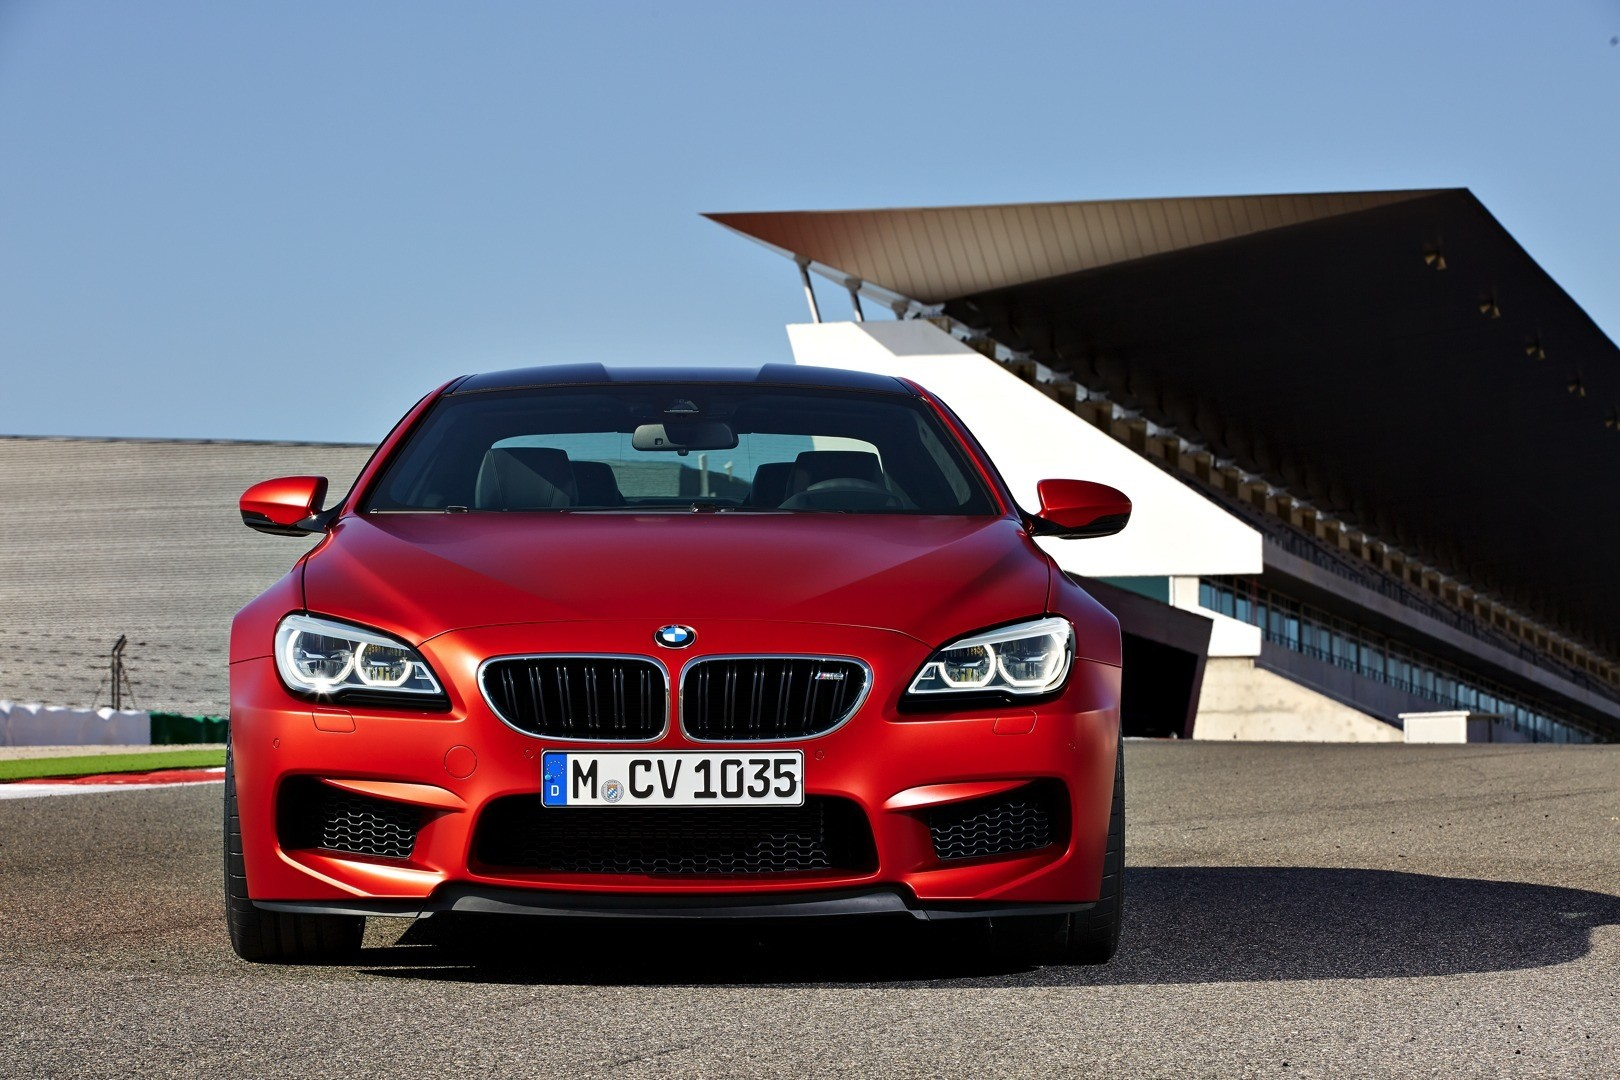 2015 BMW M6 Facelift Comes Out with a New Face - autoevolution